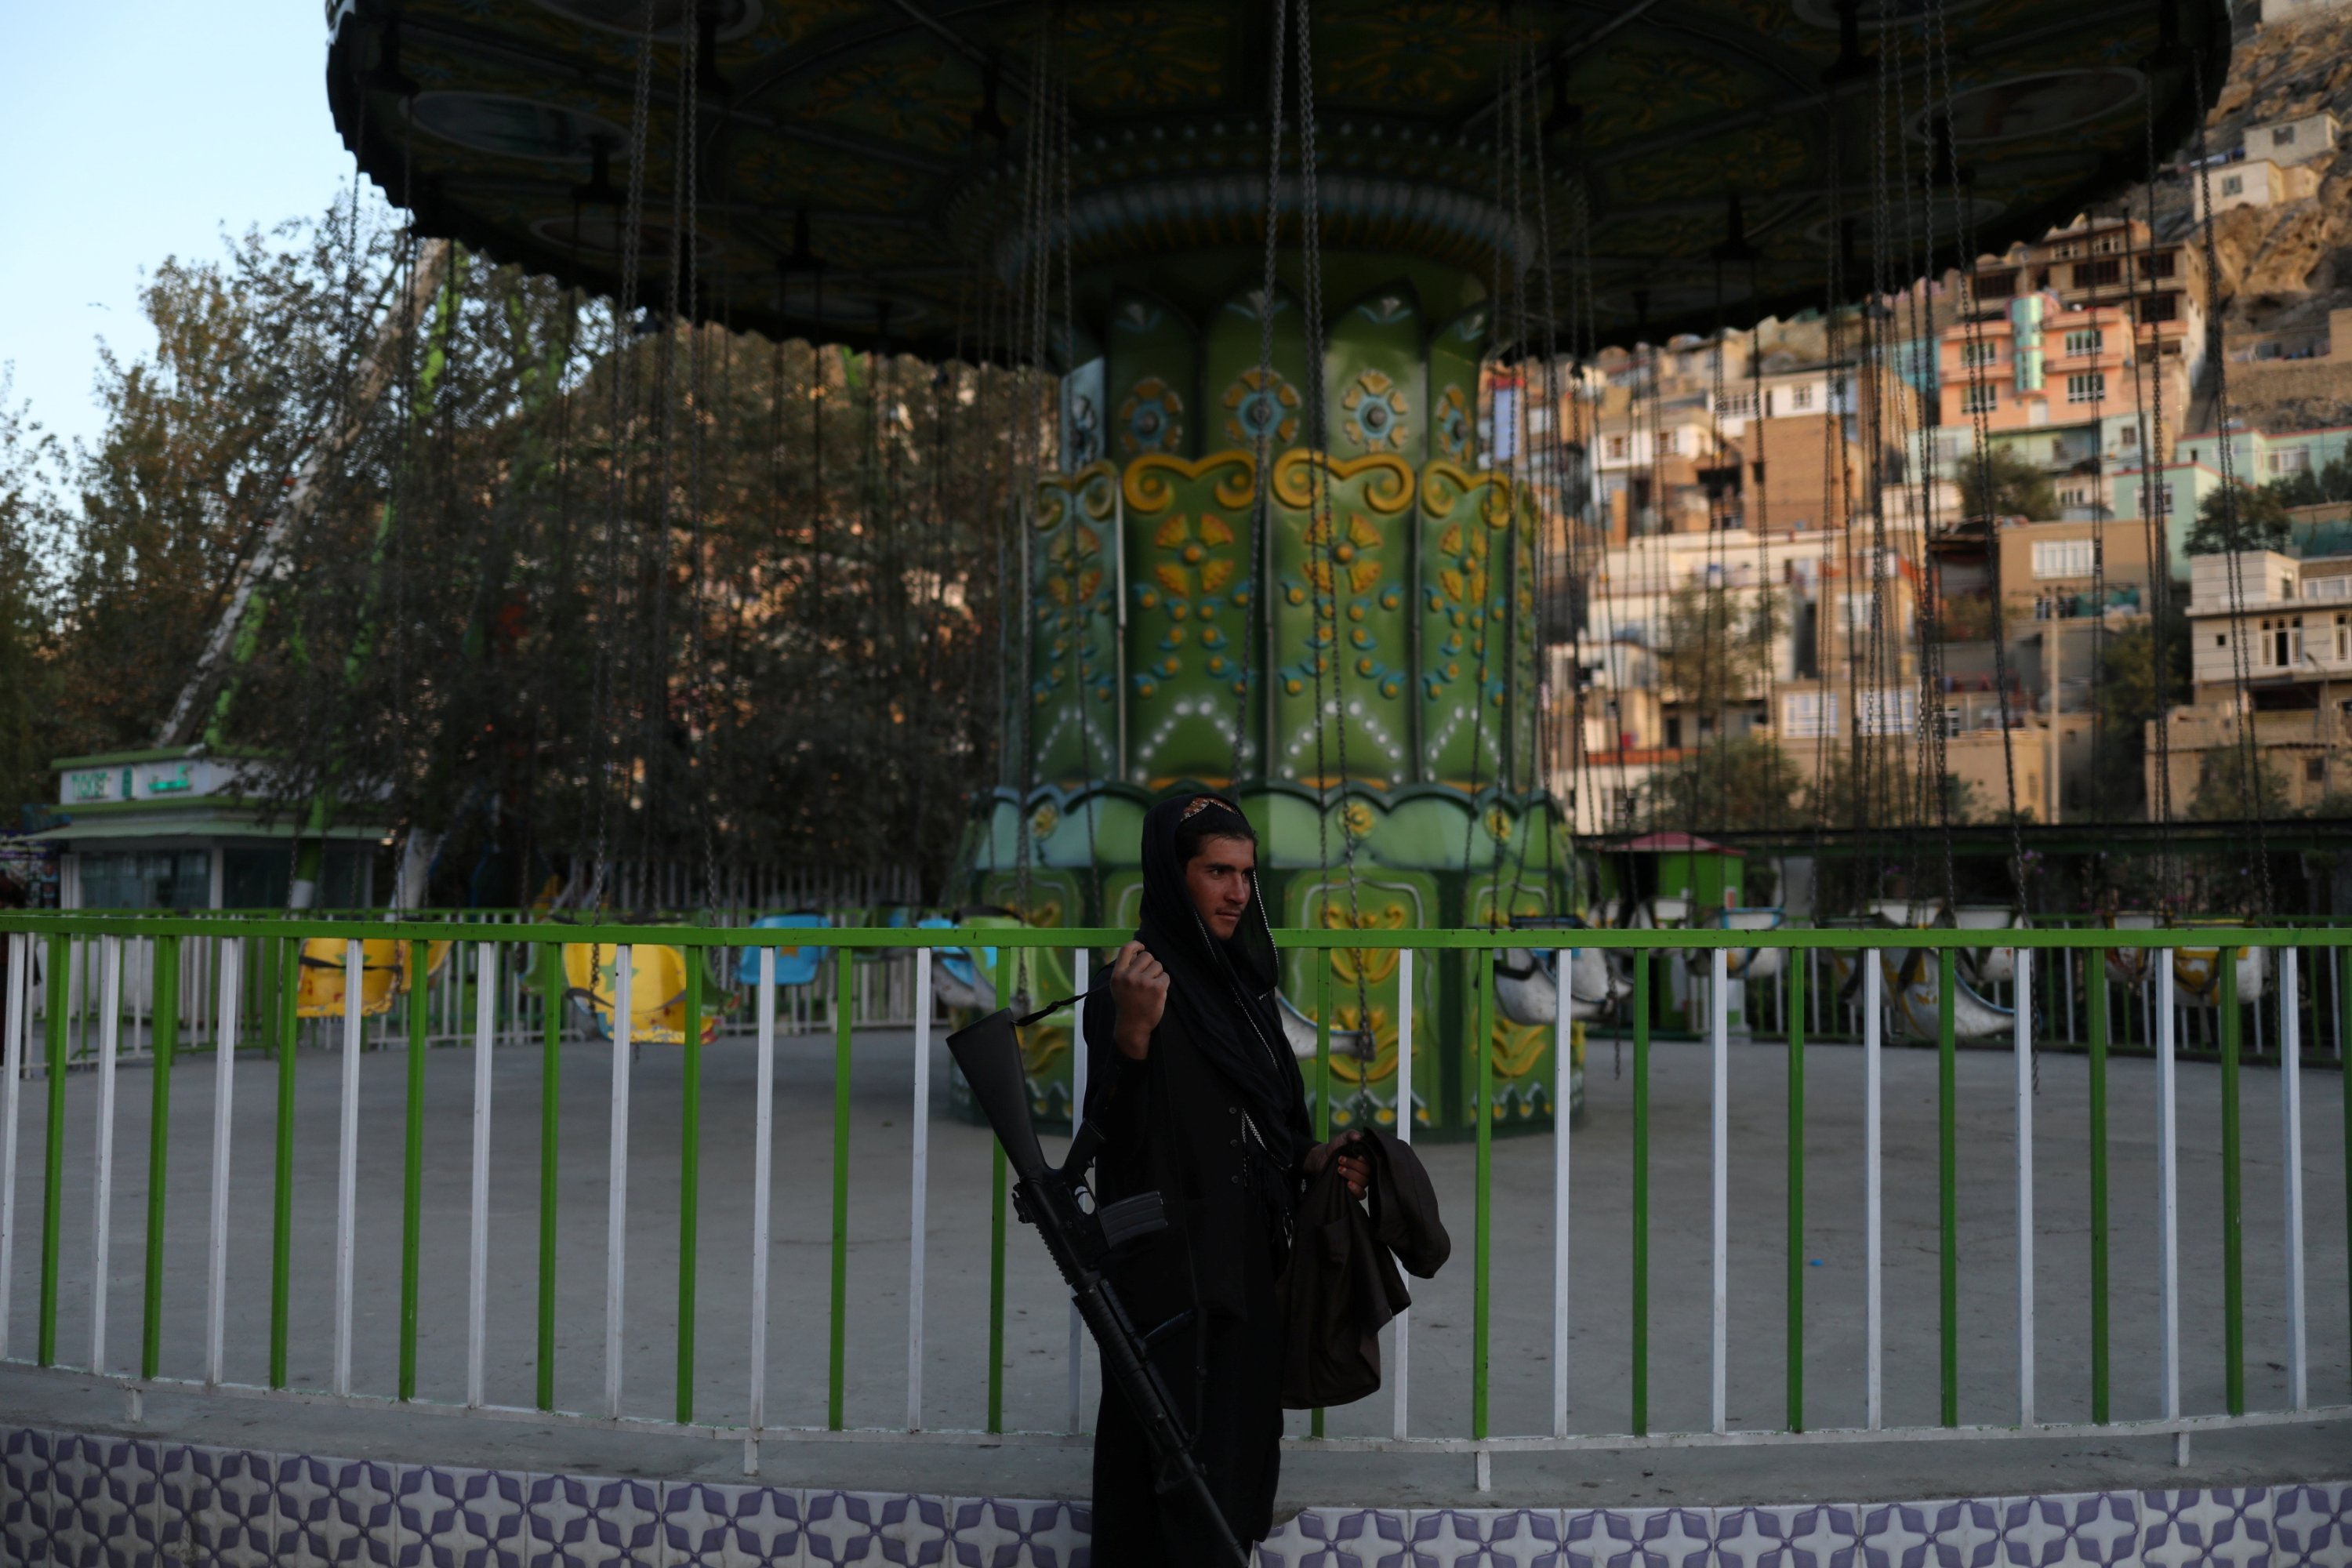 A Taliban soldier stands at an amusement park in Kabul, Afghanistan, Sept. 13, 2021. (REUTERS Photo)